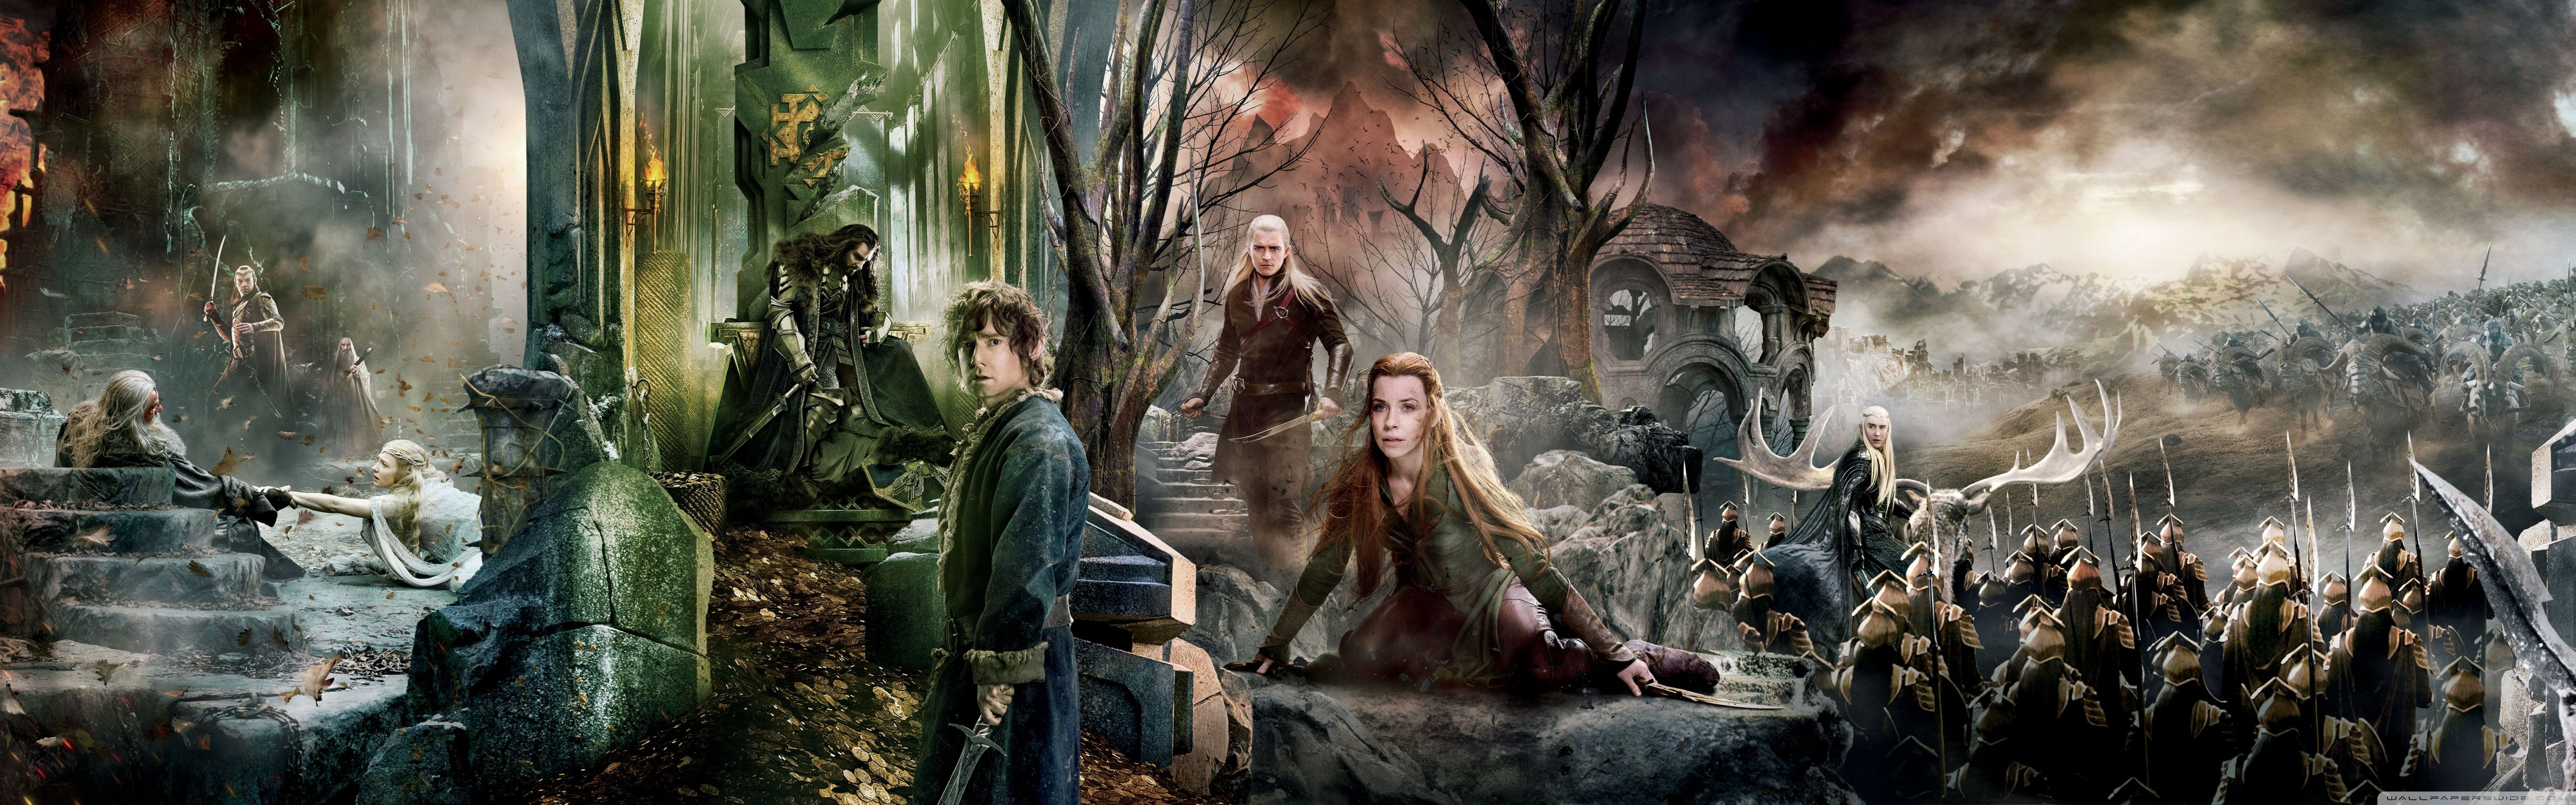 5120x1600 The Hobbit The Battle Of The Five Armies Dual Monitor ❤ 4K HD ...